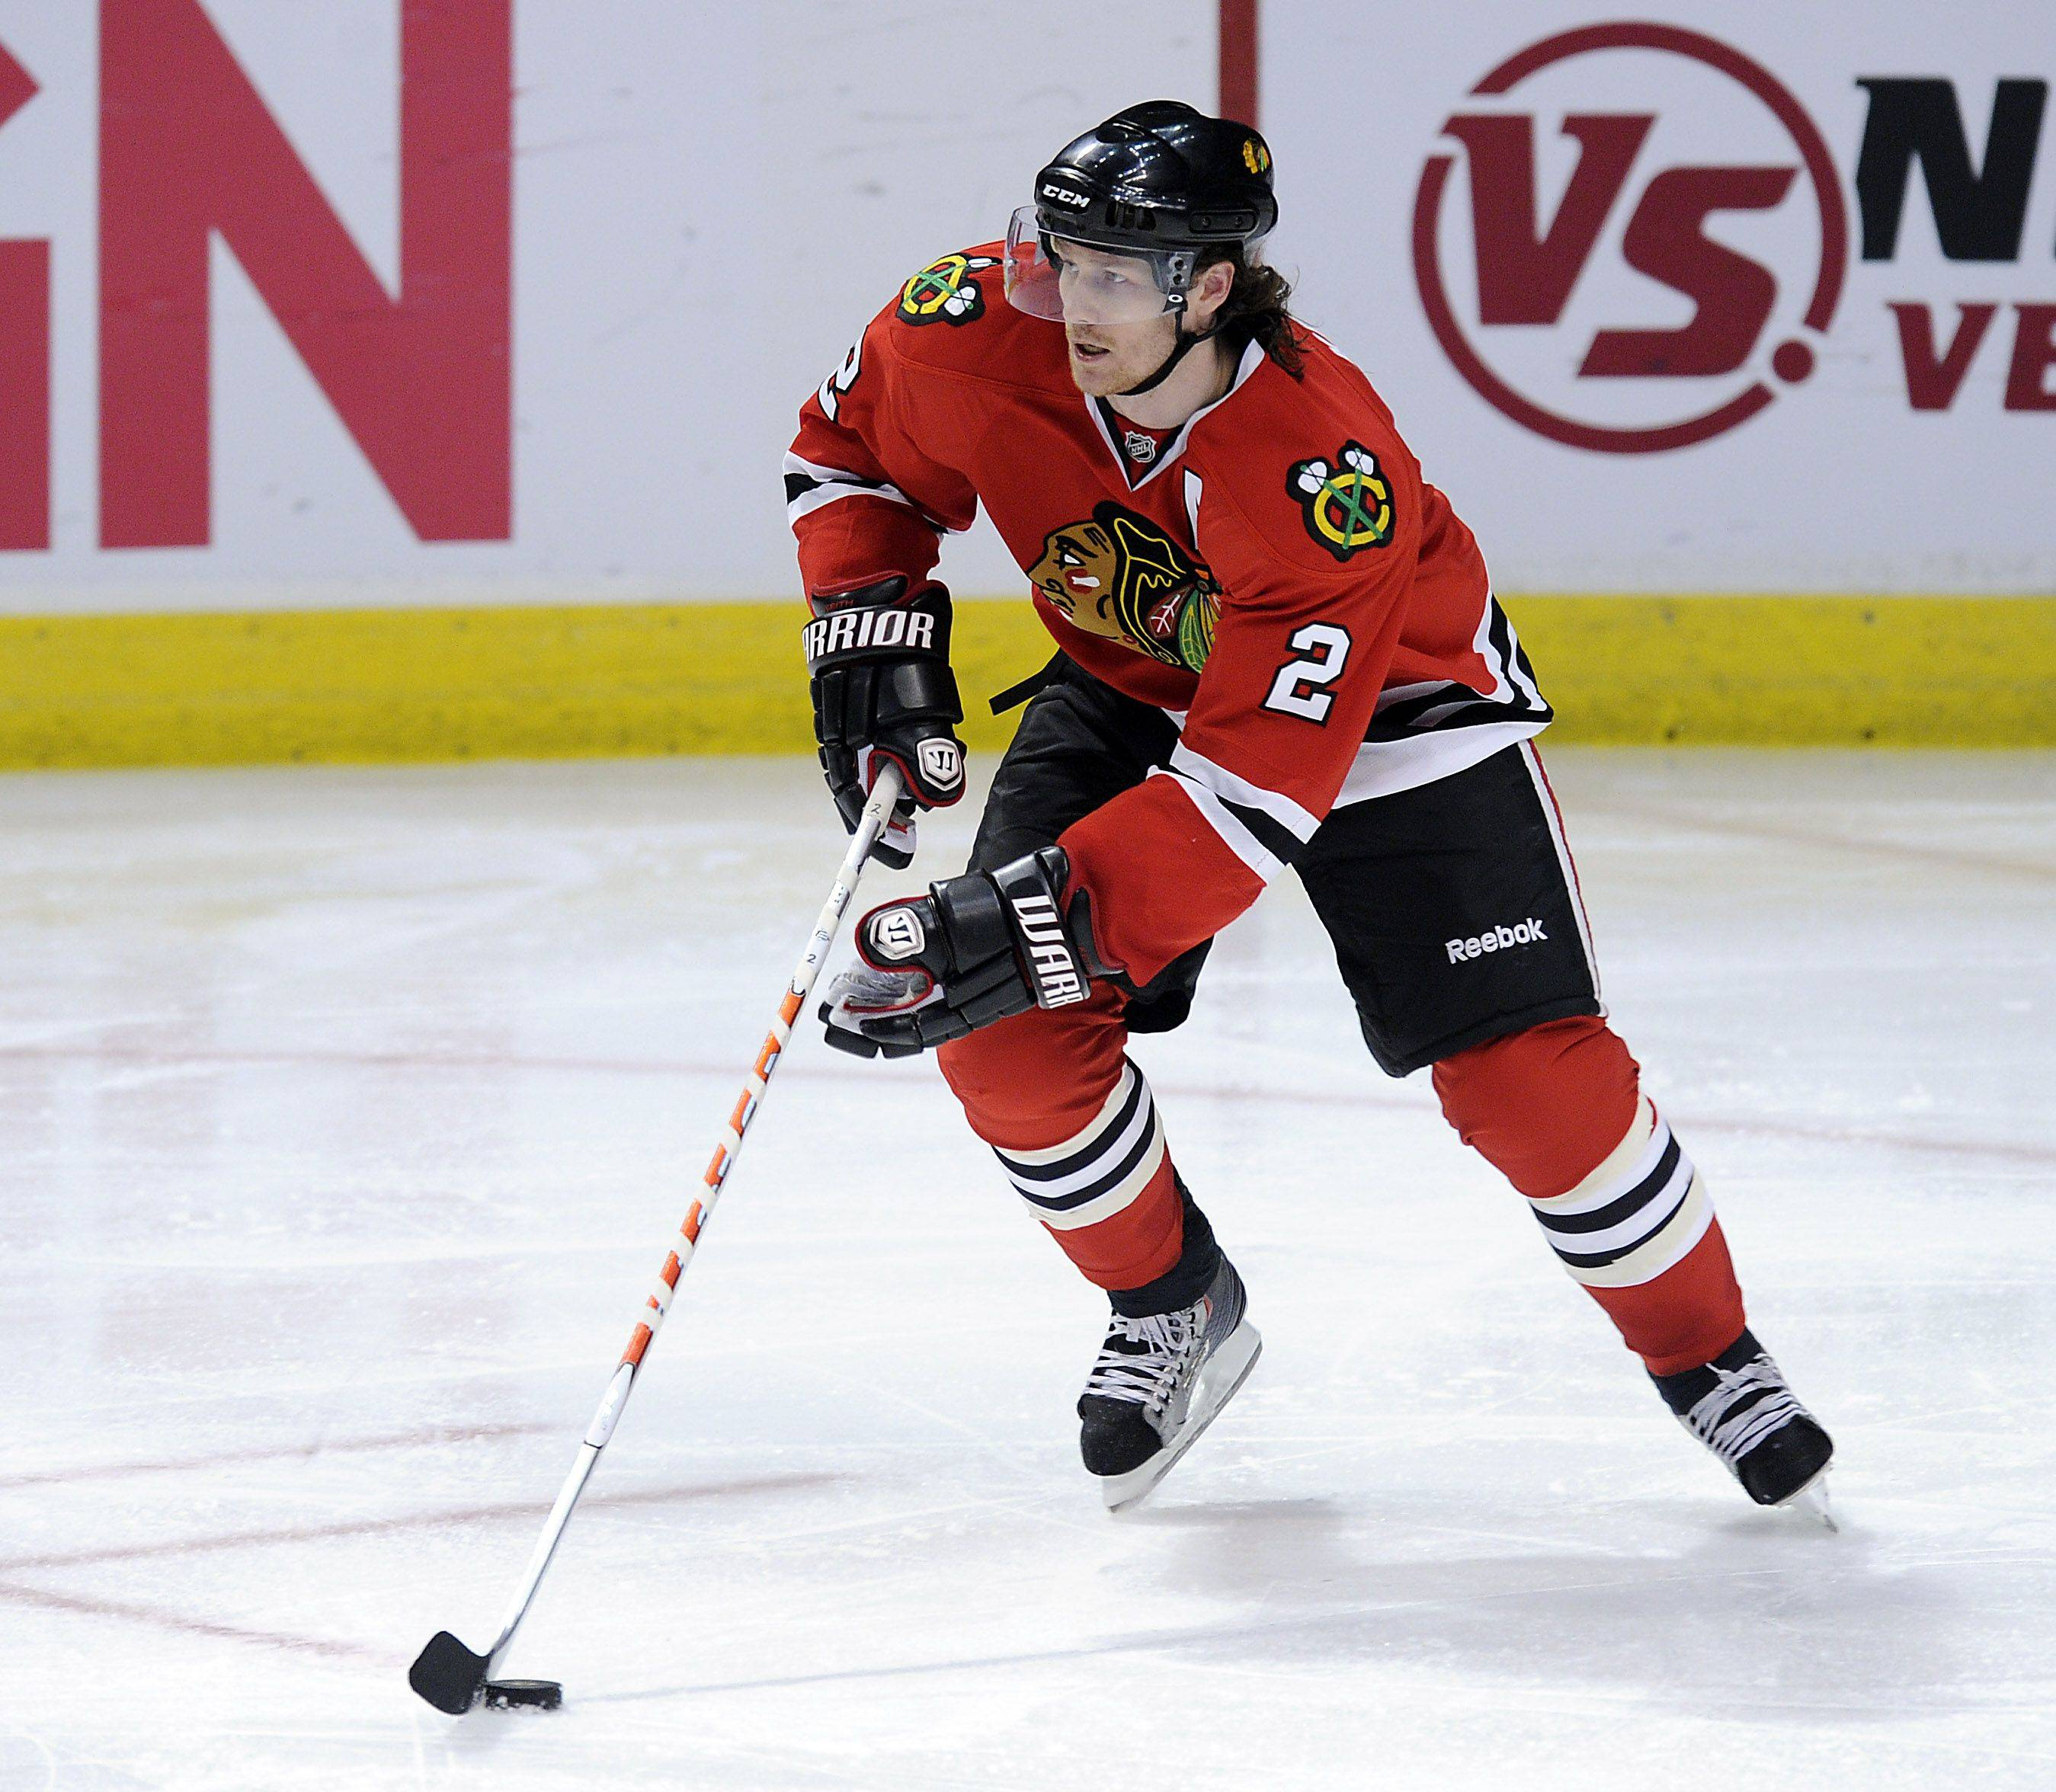 Duncan Keith goes on the move as he tries to score in the third period.